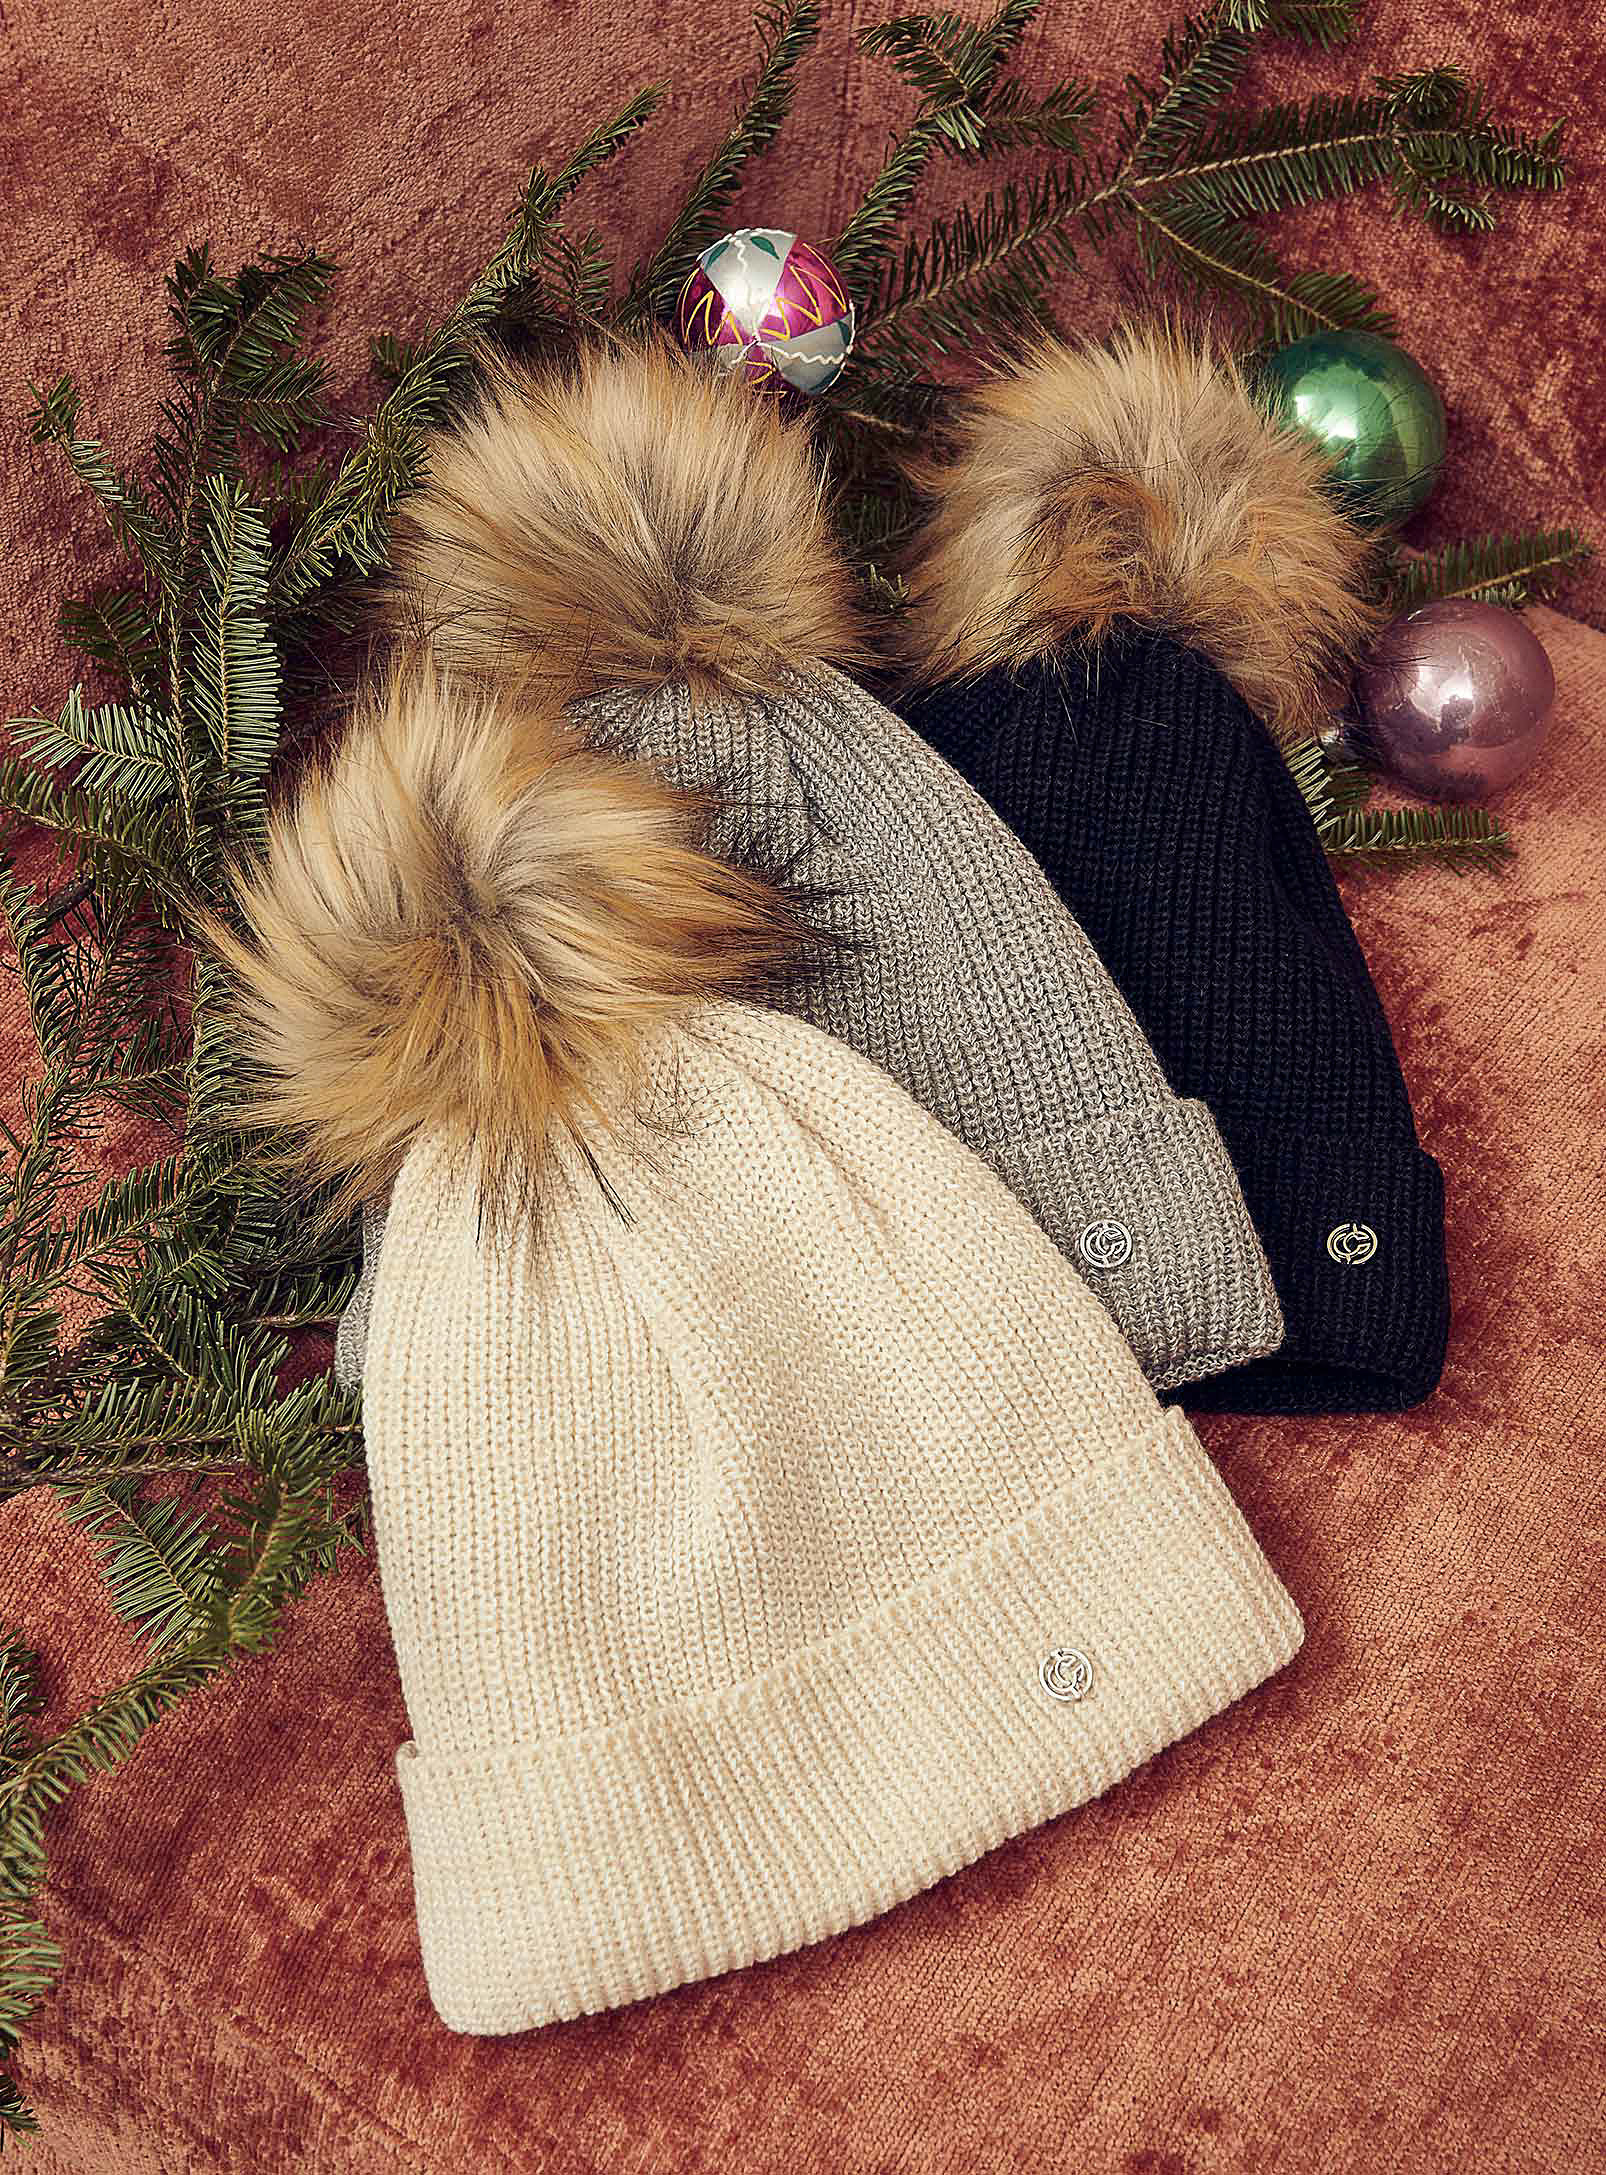 Three knit hats with fluffy pom poms on a carpet